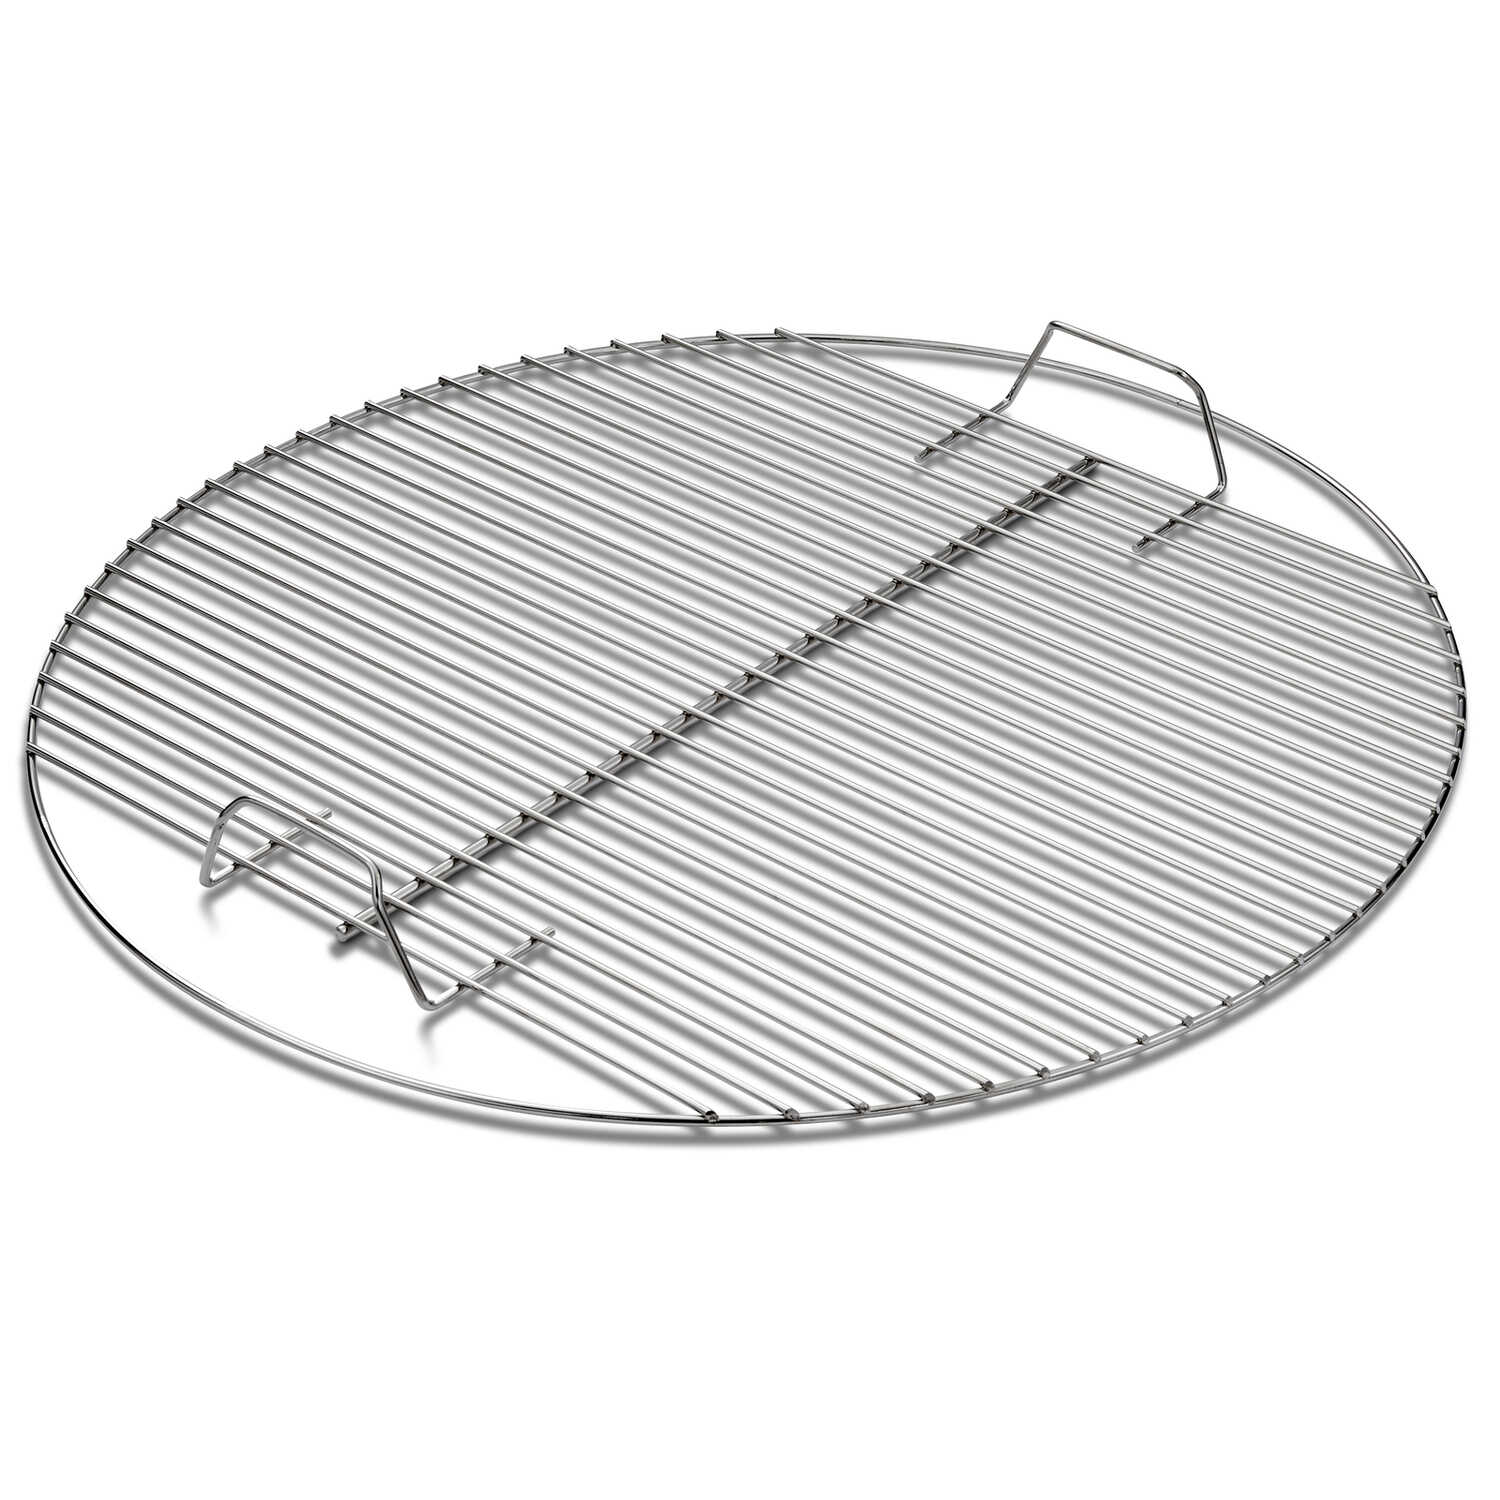 Weber  Plated Steel  Grill Cooking Grate  2 in. H x 21.5 in. W x 21.5 in. L